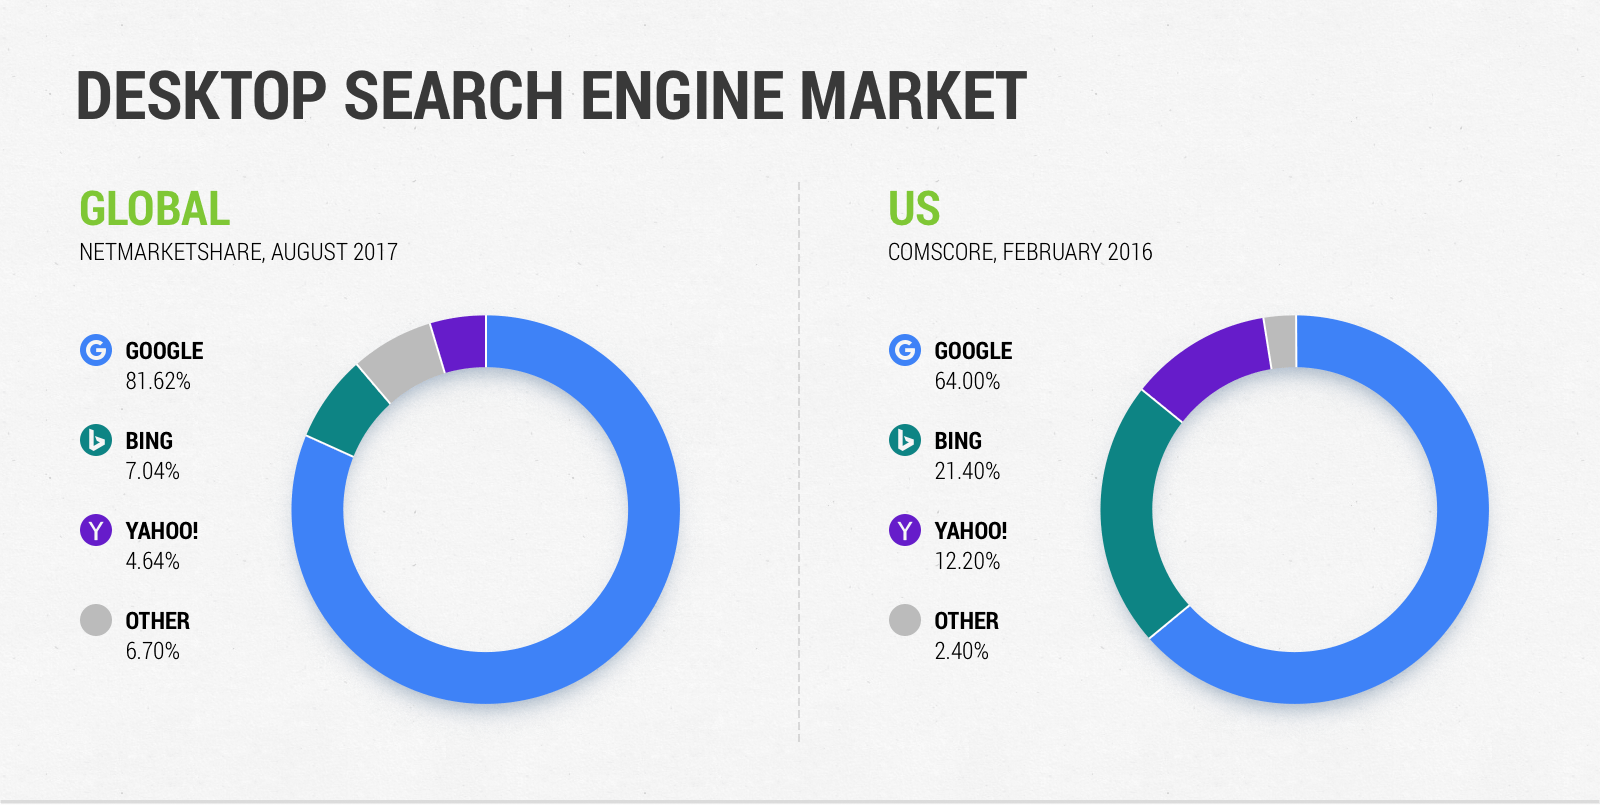 Desktop Search Engine Market